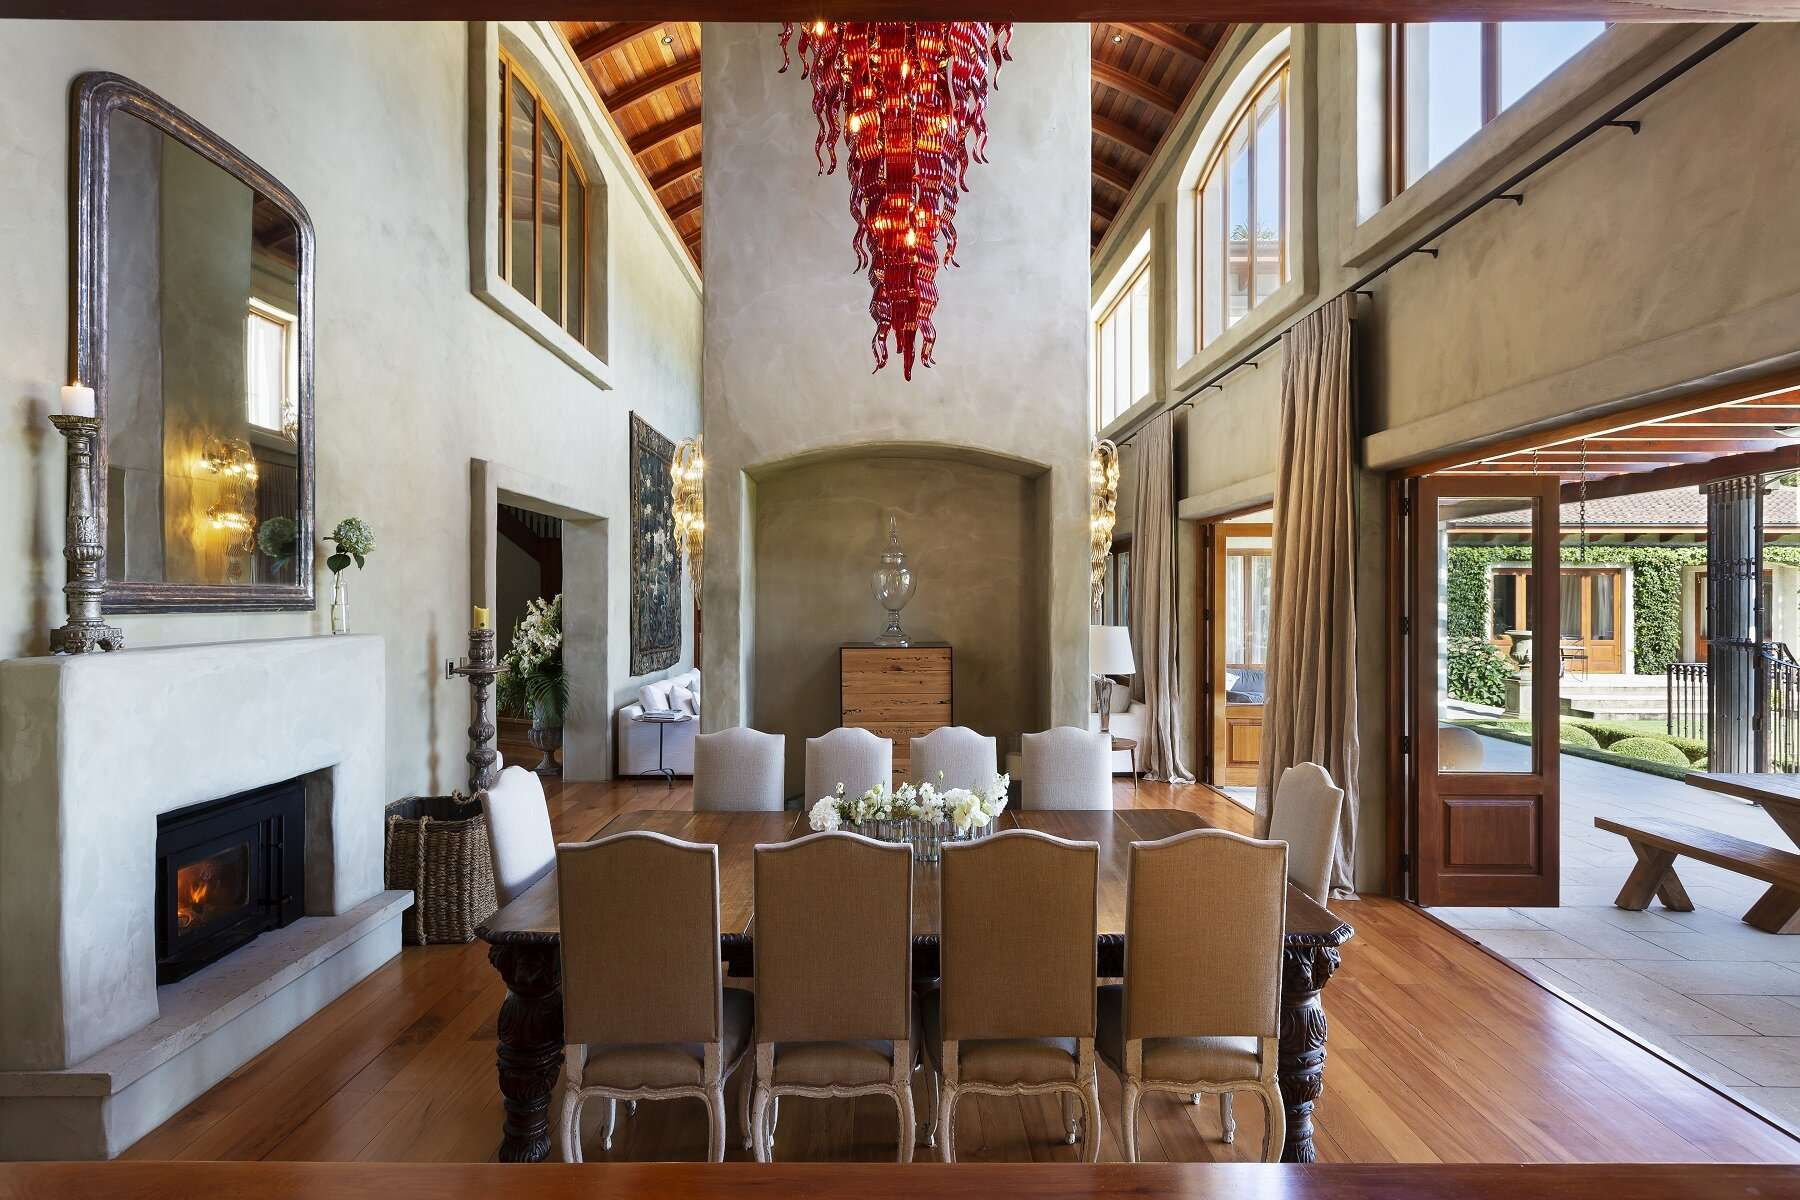 dining room with high ceilings and feature red ceiling light, at Ataahua Lodge one of the best villas in the world